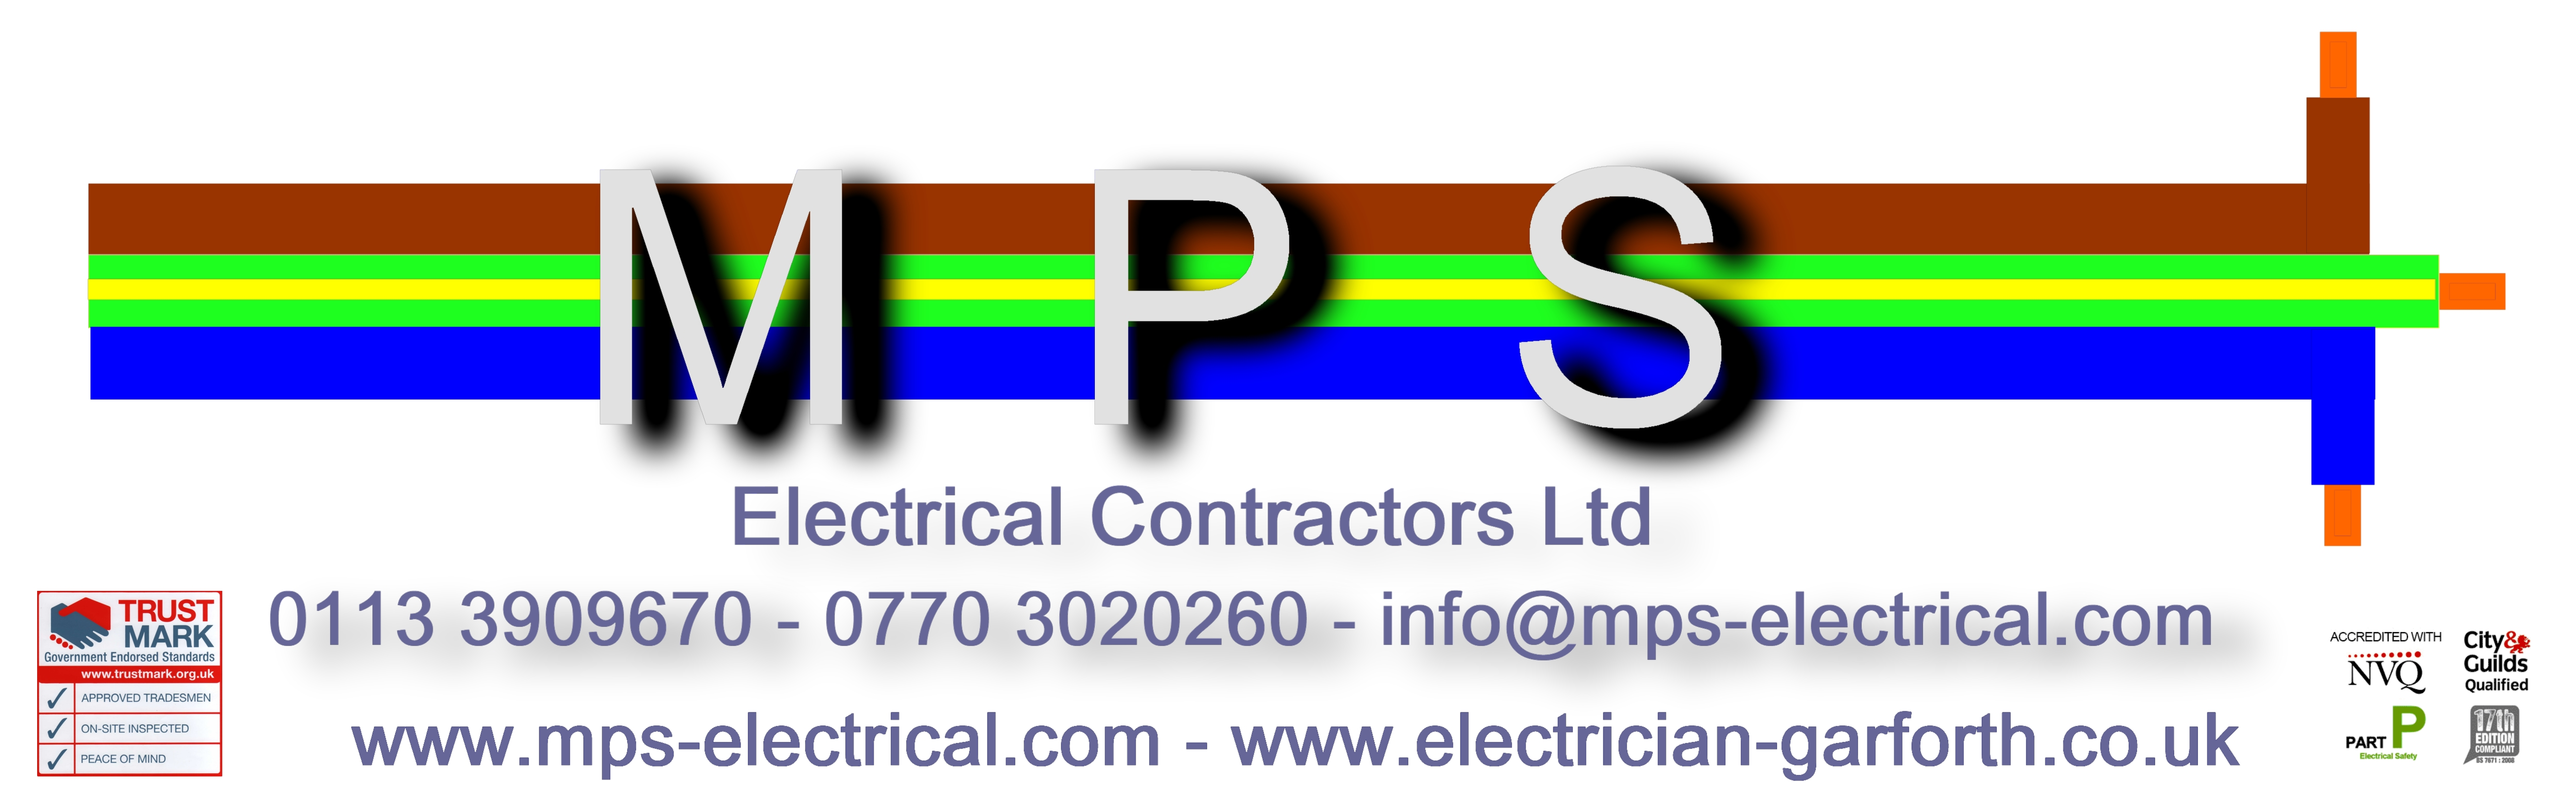 Electrician Garforth